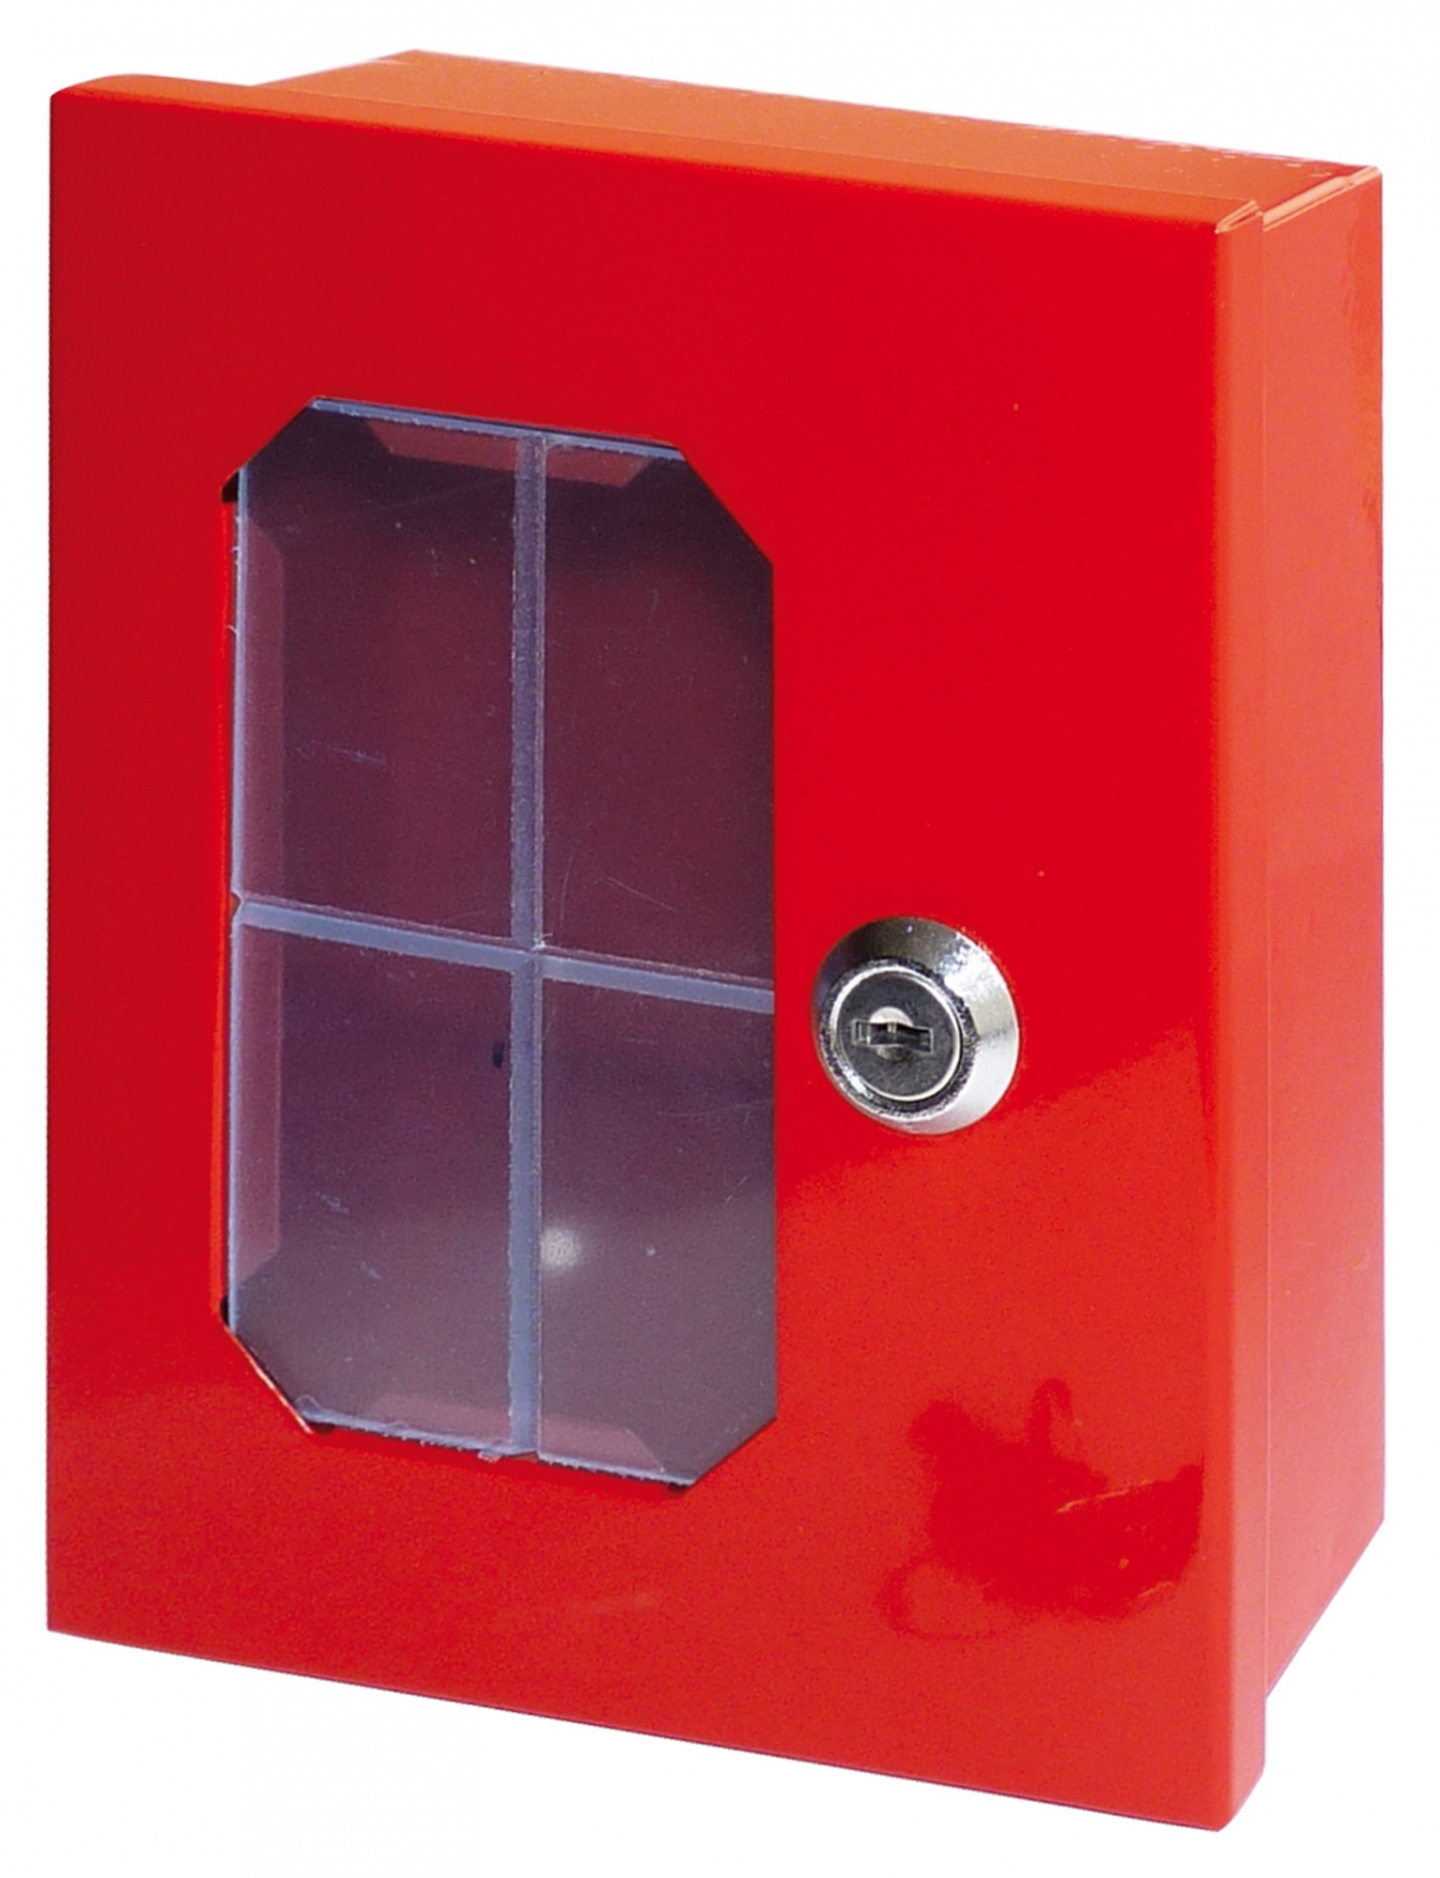 Emergency Break Glass Key Box Fire Safety Equipment